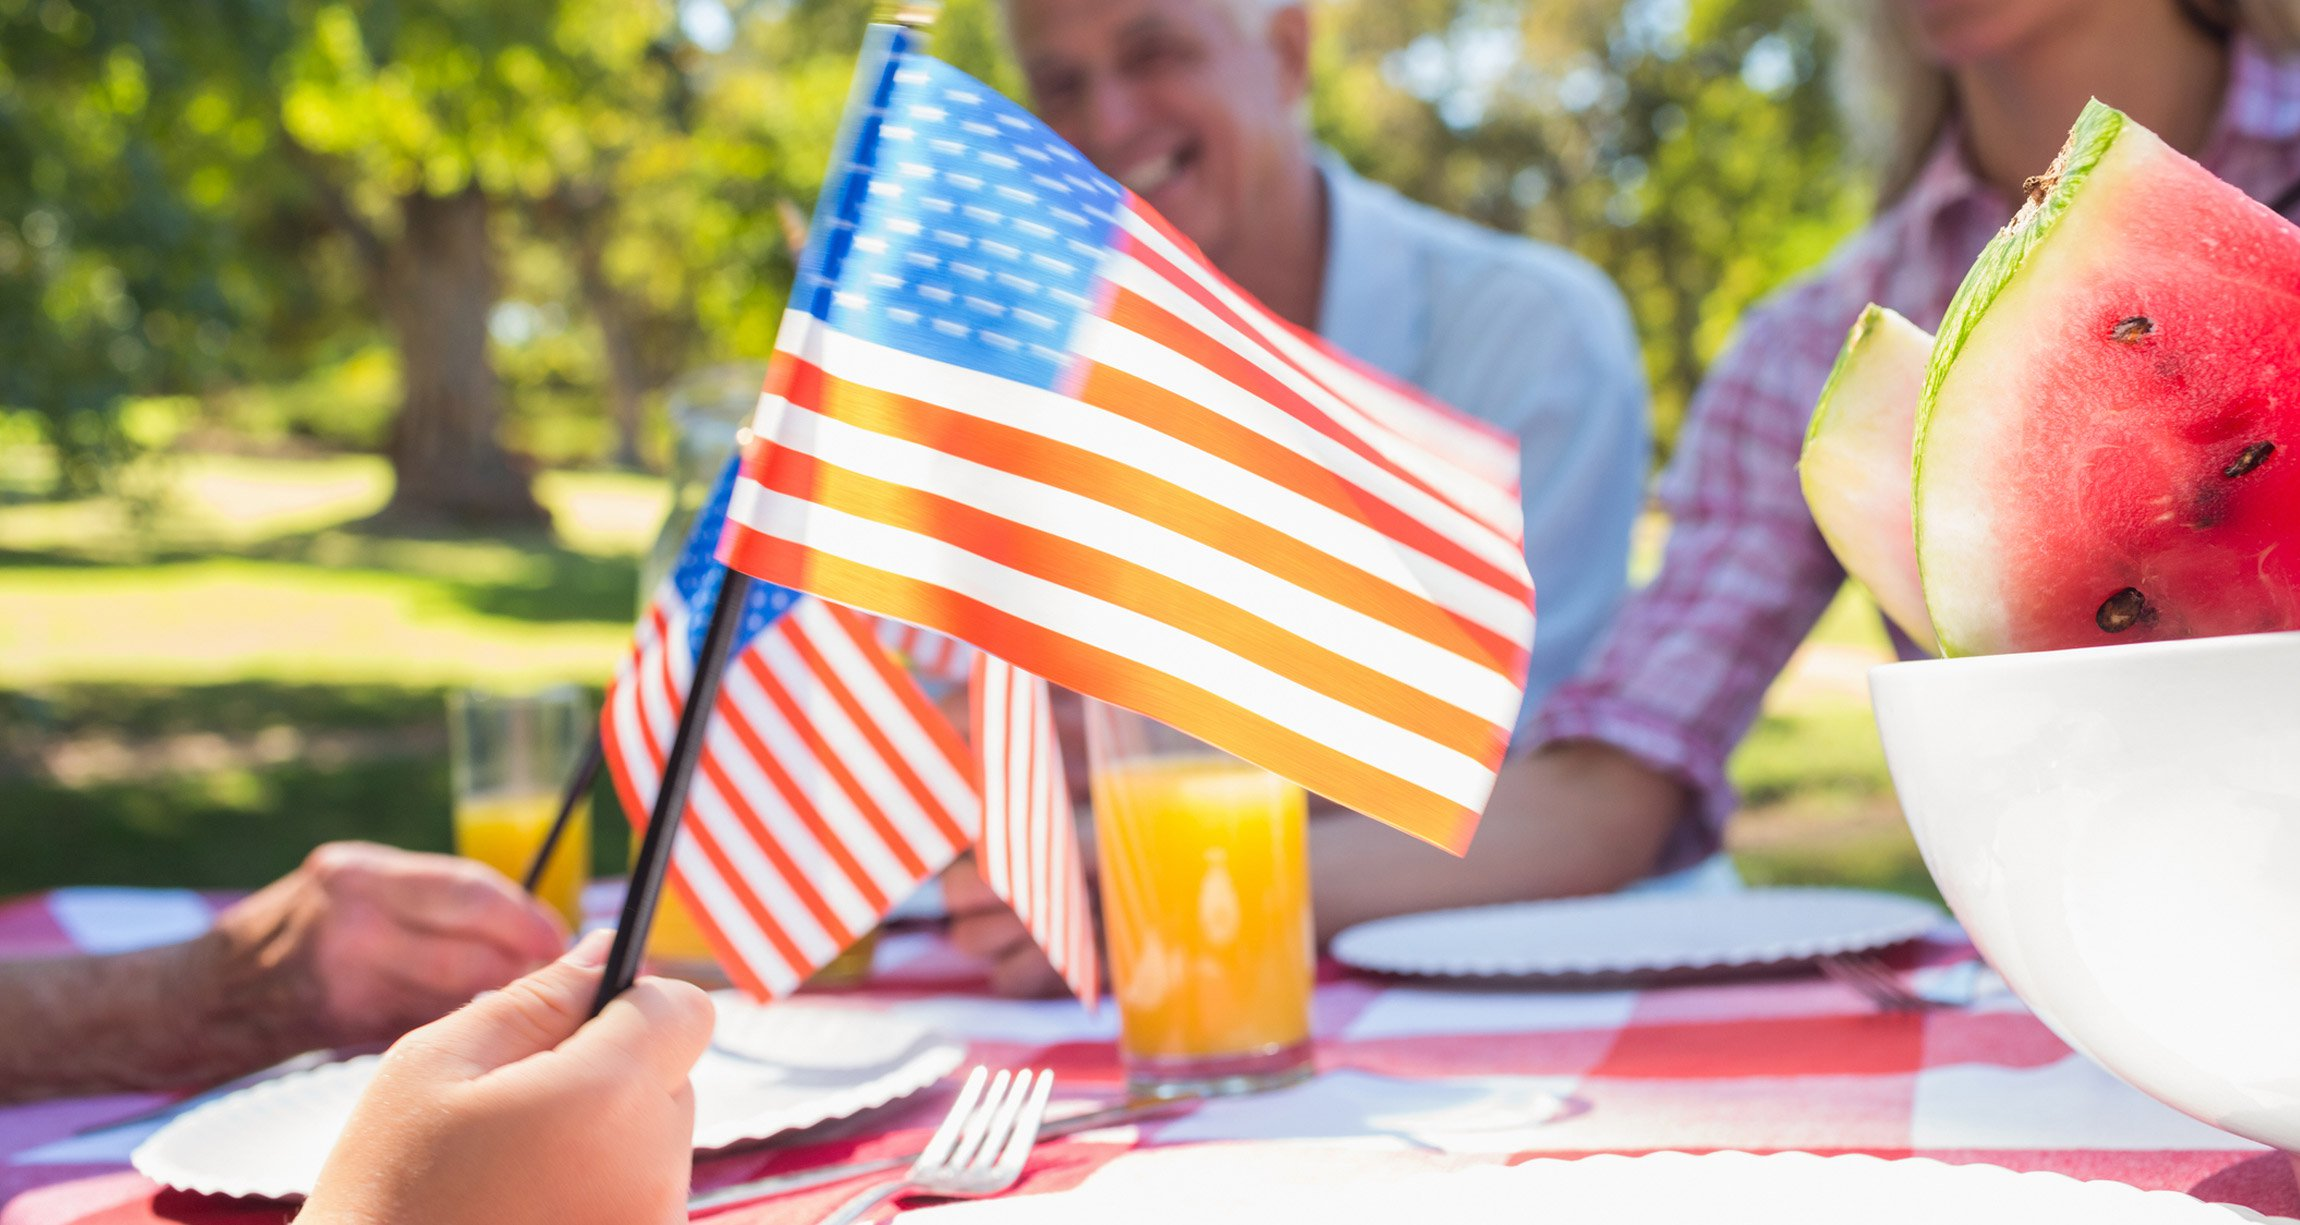 American flag being held by child at a picnic table